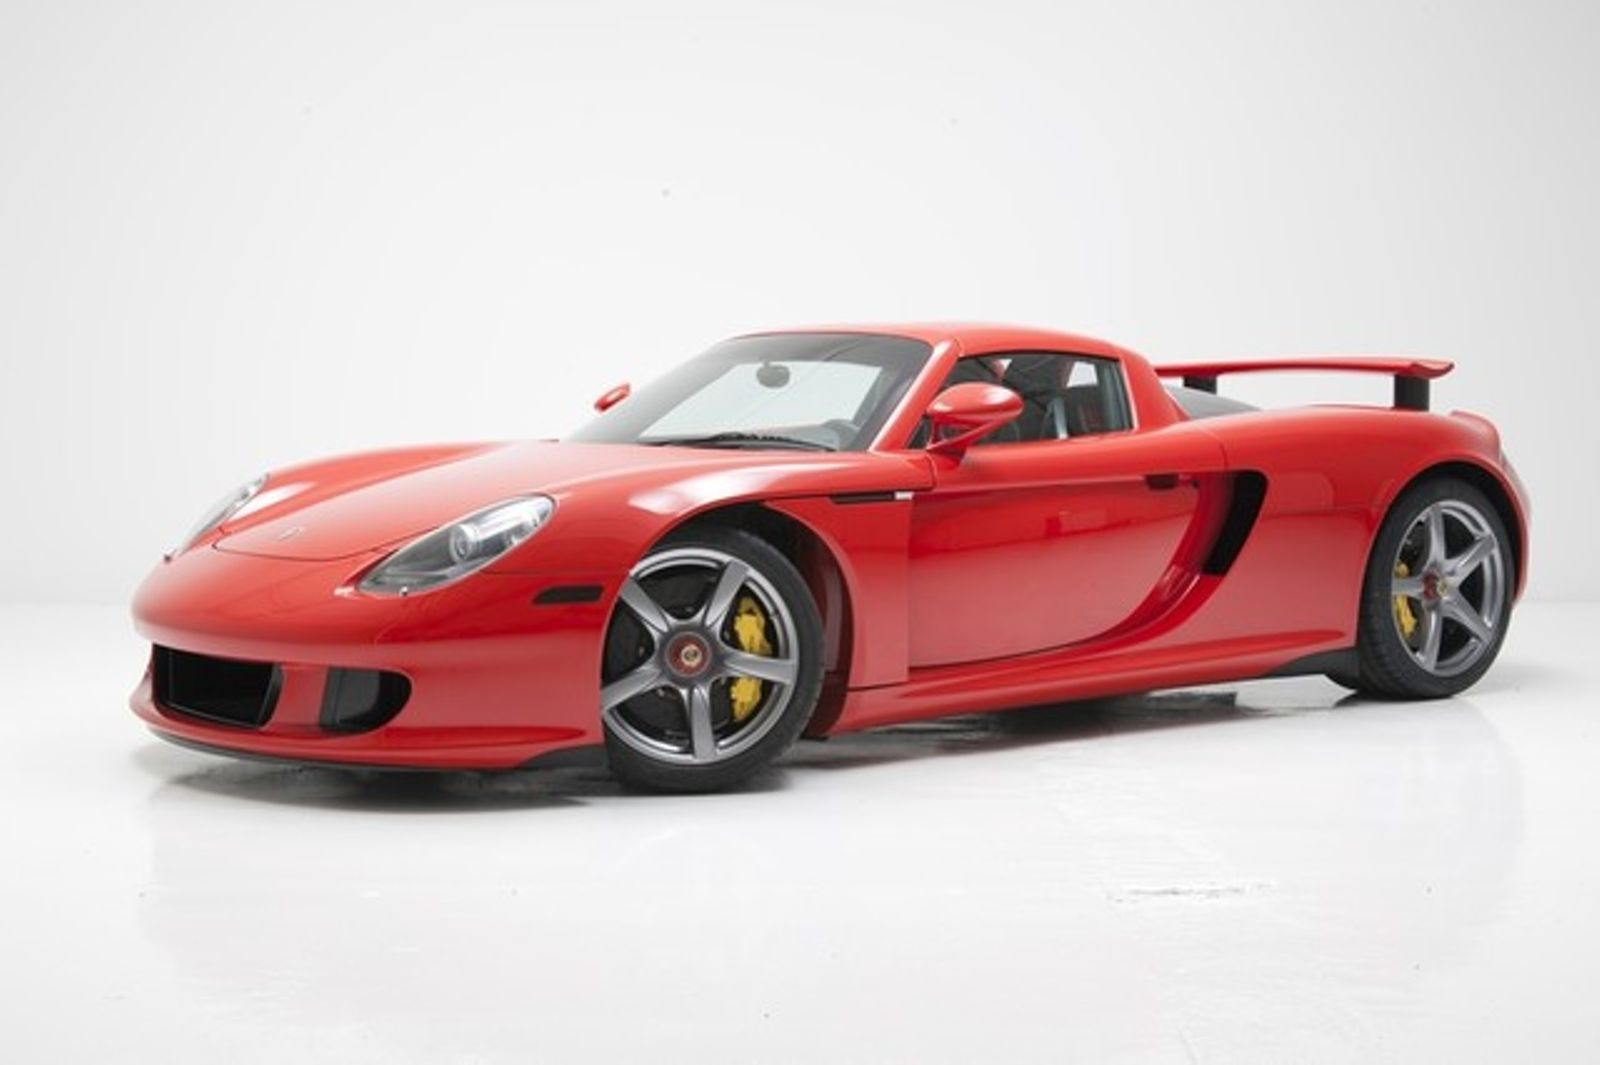 2005 Porsche Carrera Gt For Sale At Texas Hot Rides For Usd 800k